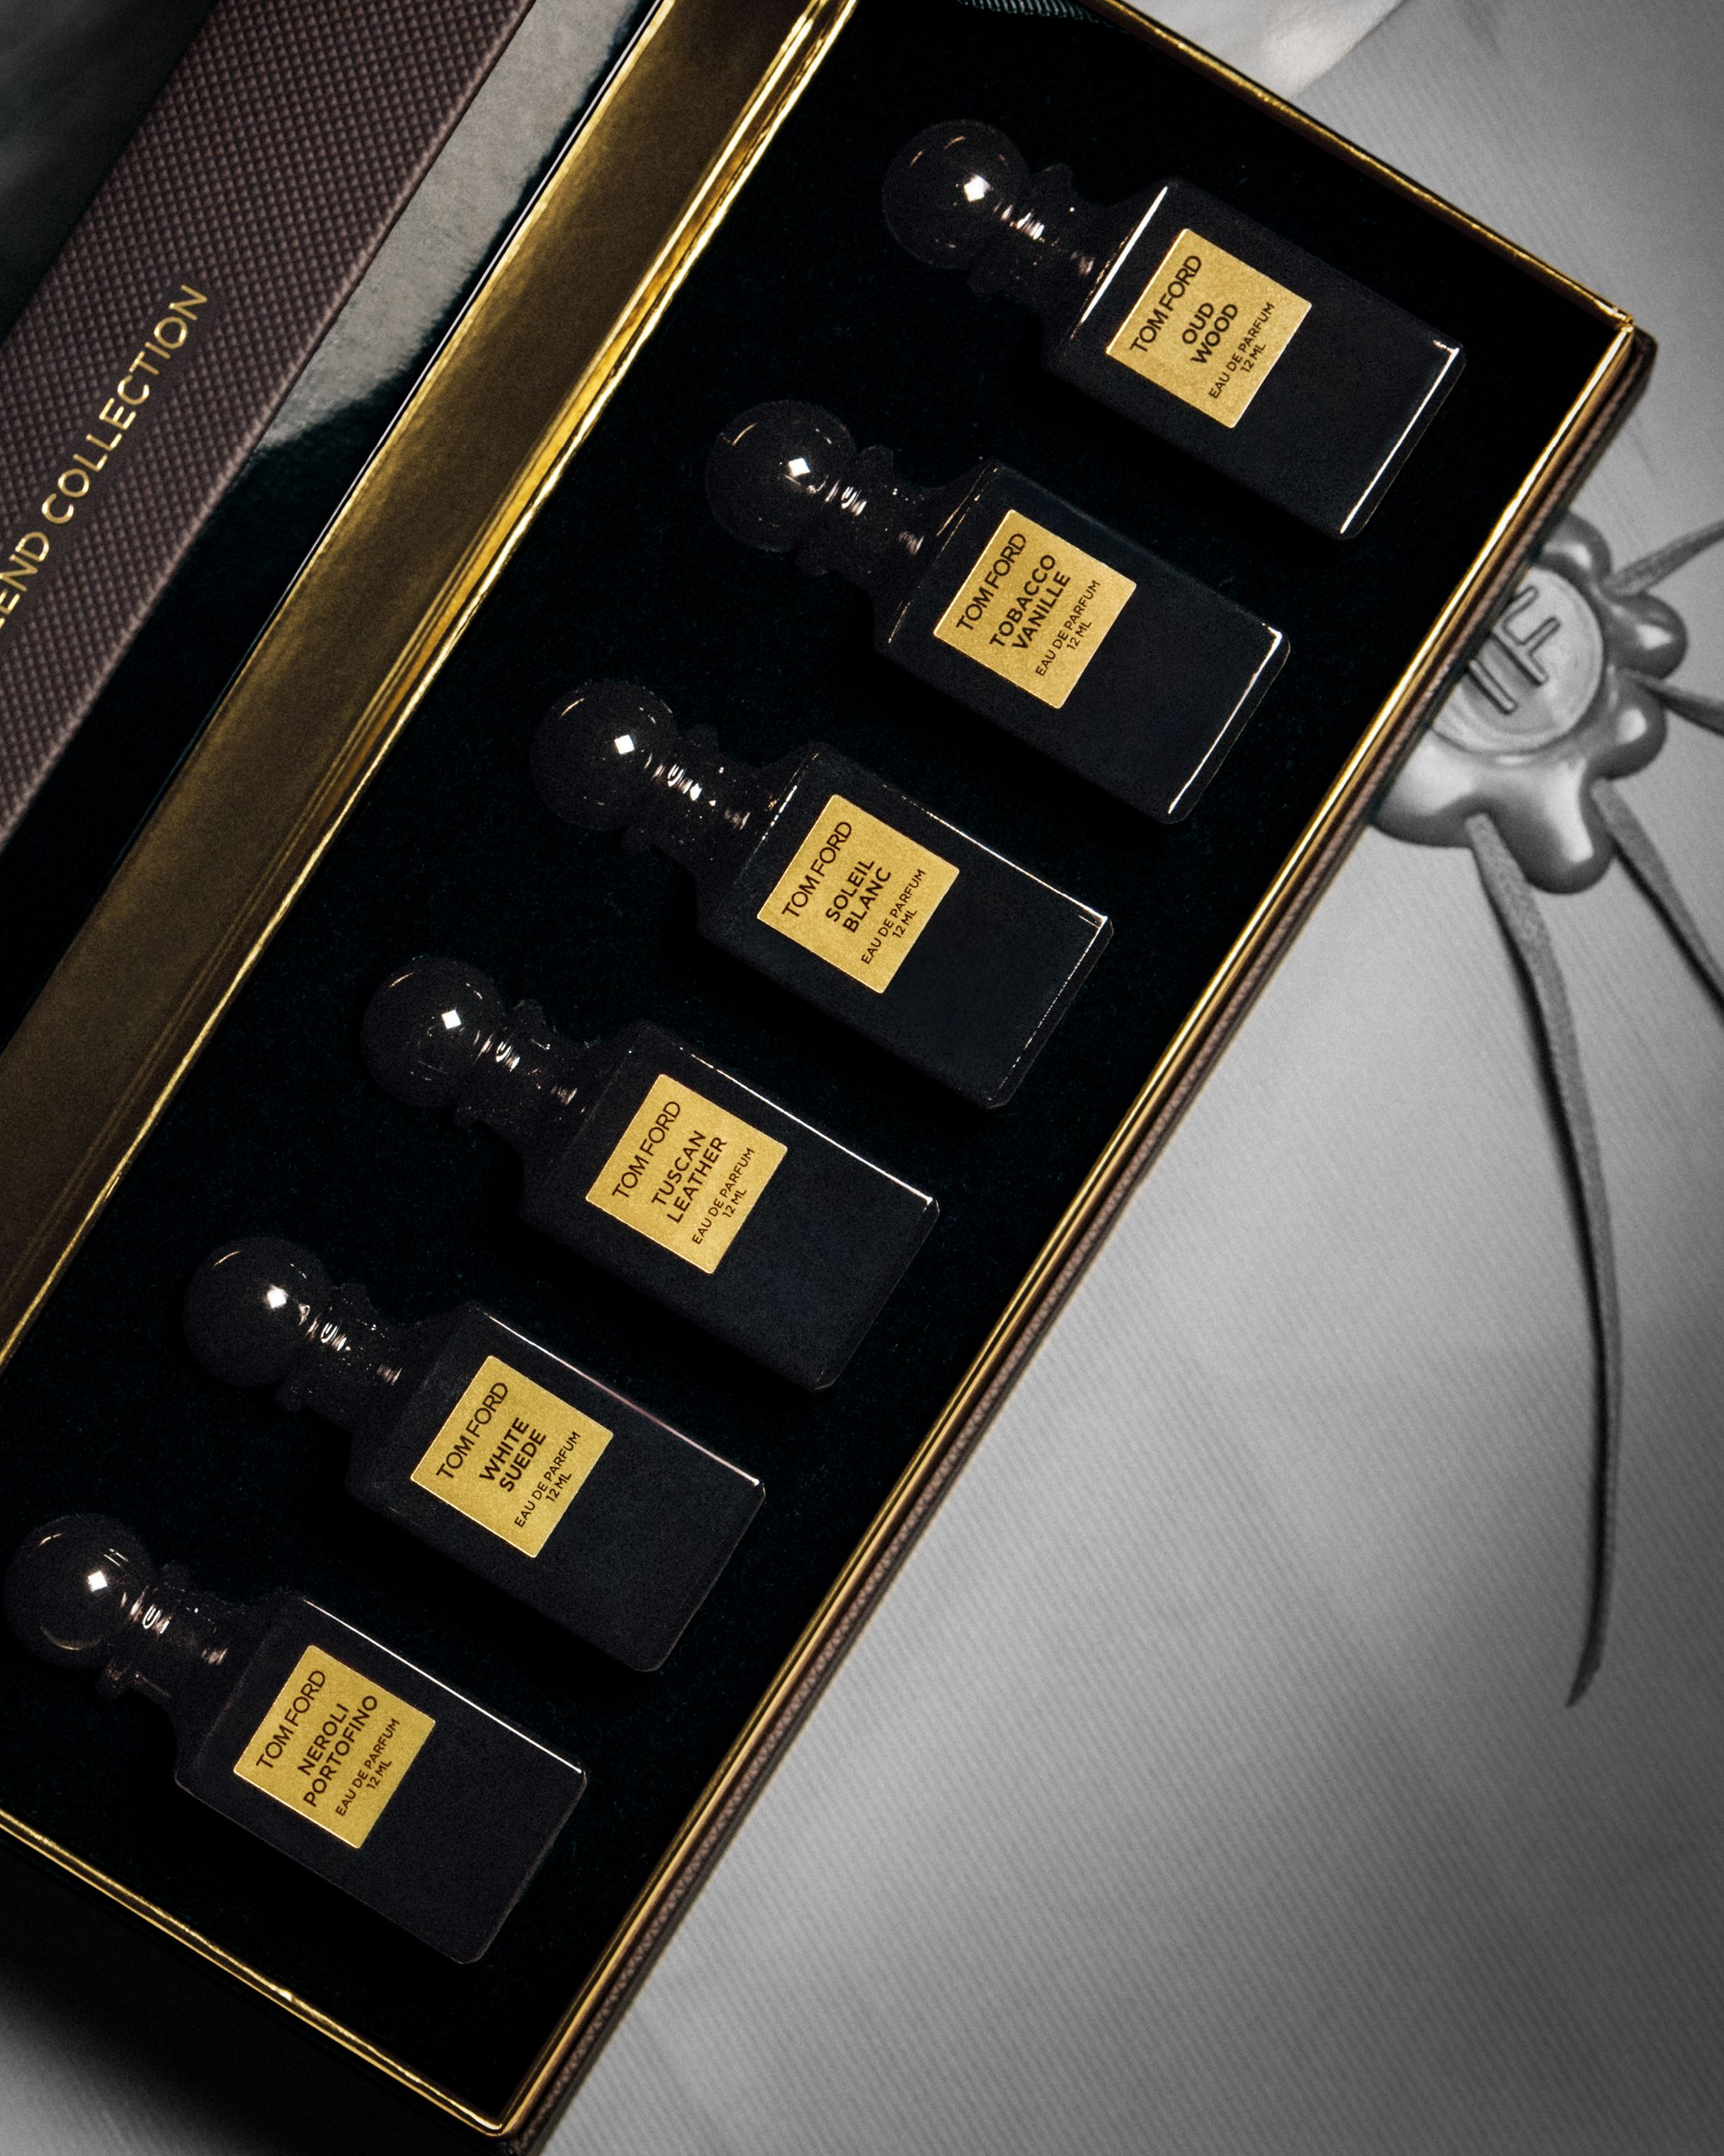 8f9b7e904b550 The Private Blend Collection Coffret featuring six miniature fragrances  from TOM FORD s personal scent laboratory.  TOMFORD  PRIVATEBLEND  TFGIFTS